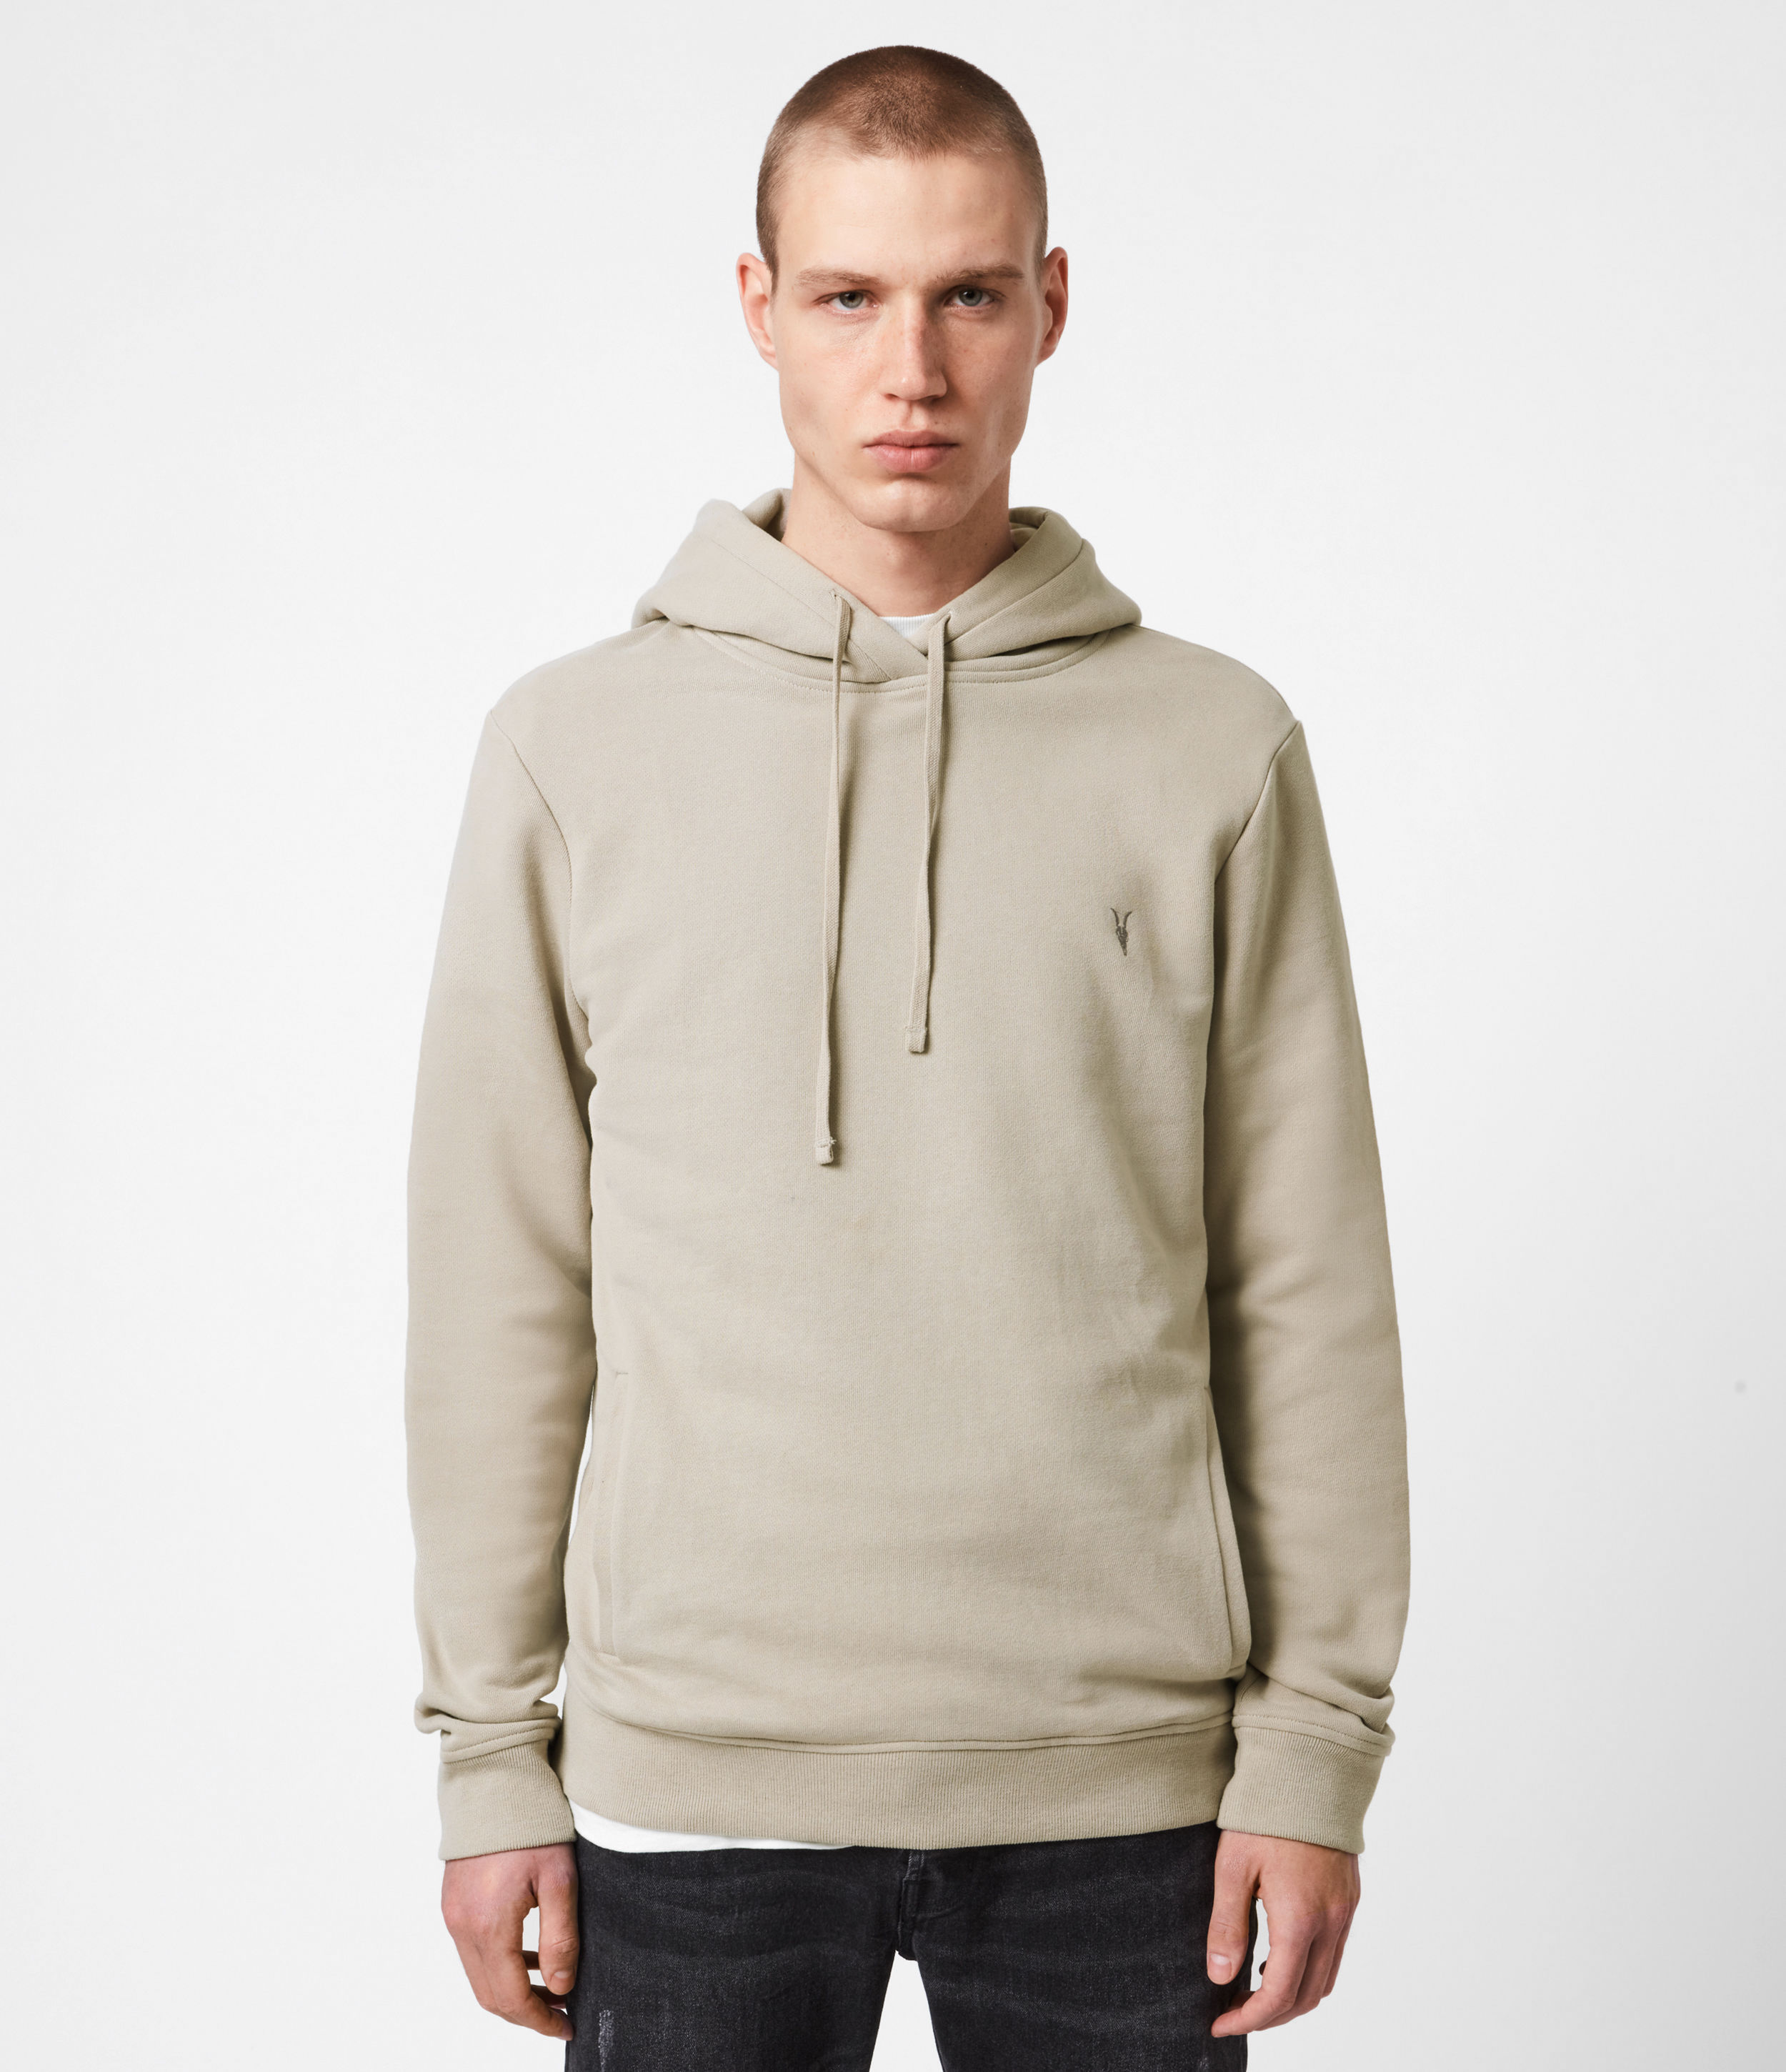 AllSaints Mens Raven Pullover Hoodie, Toasted Taupe, Size: XL